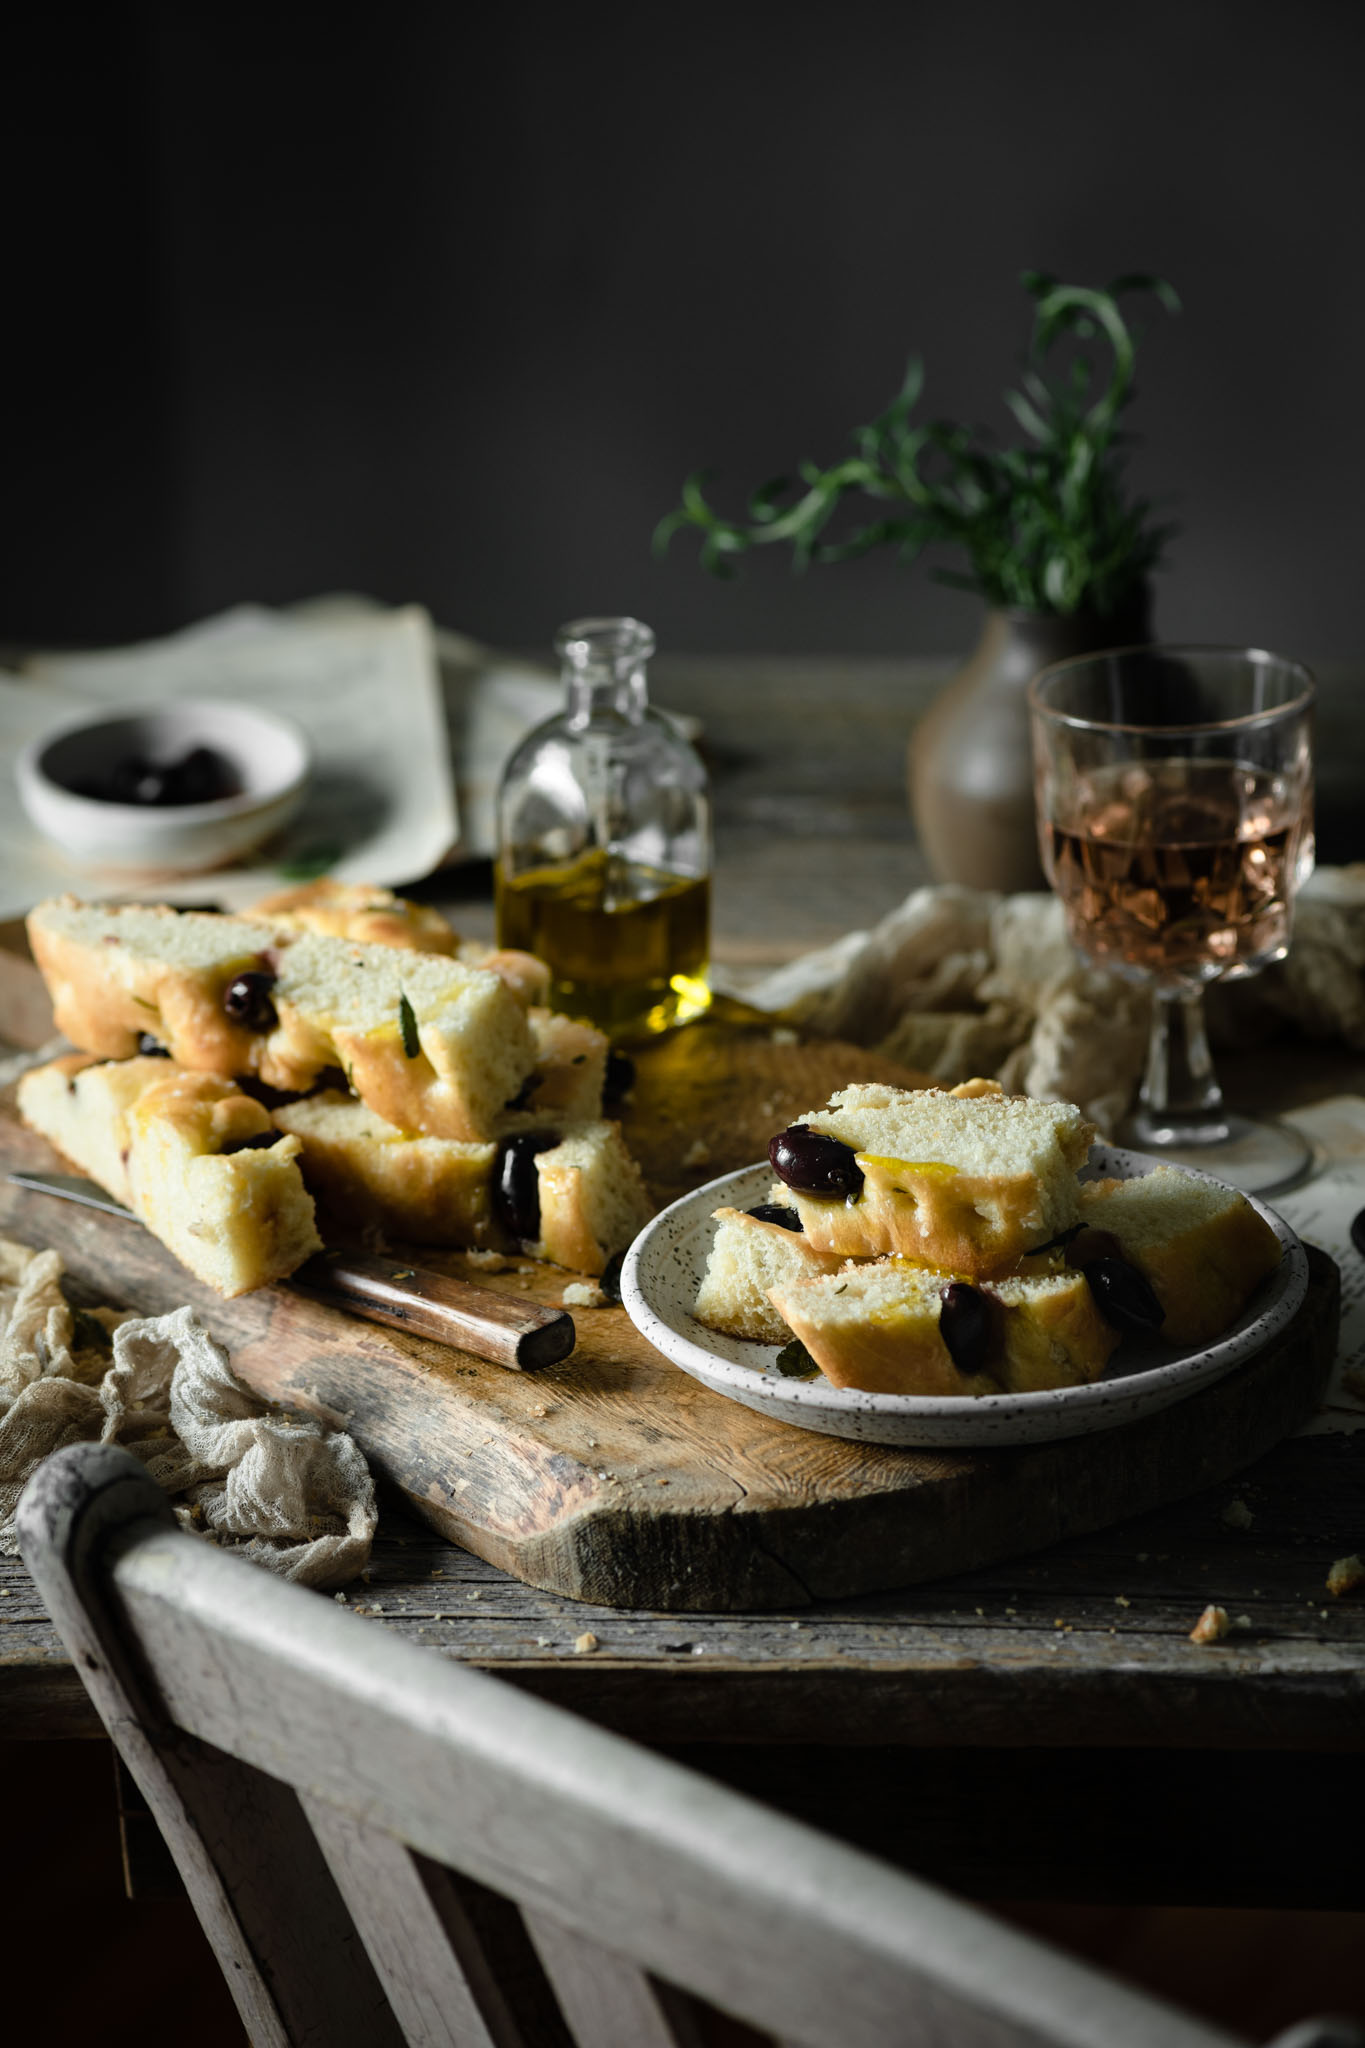 sliced focaccia bread on plate with wine.